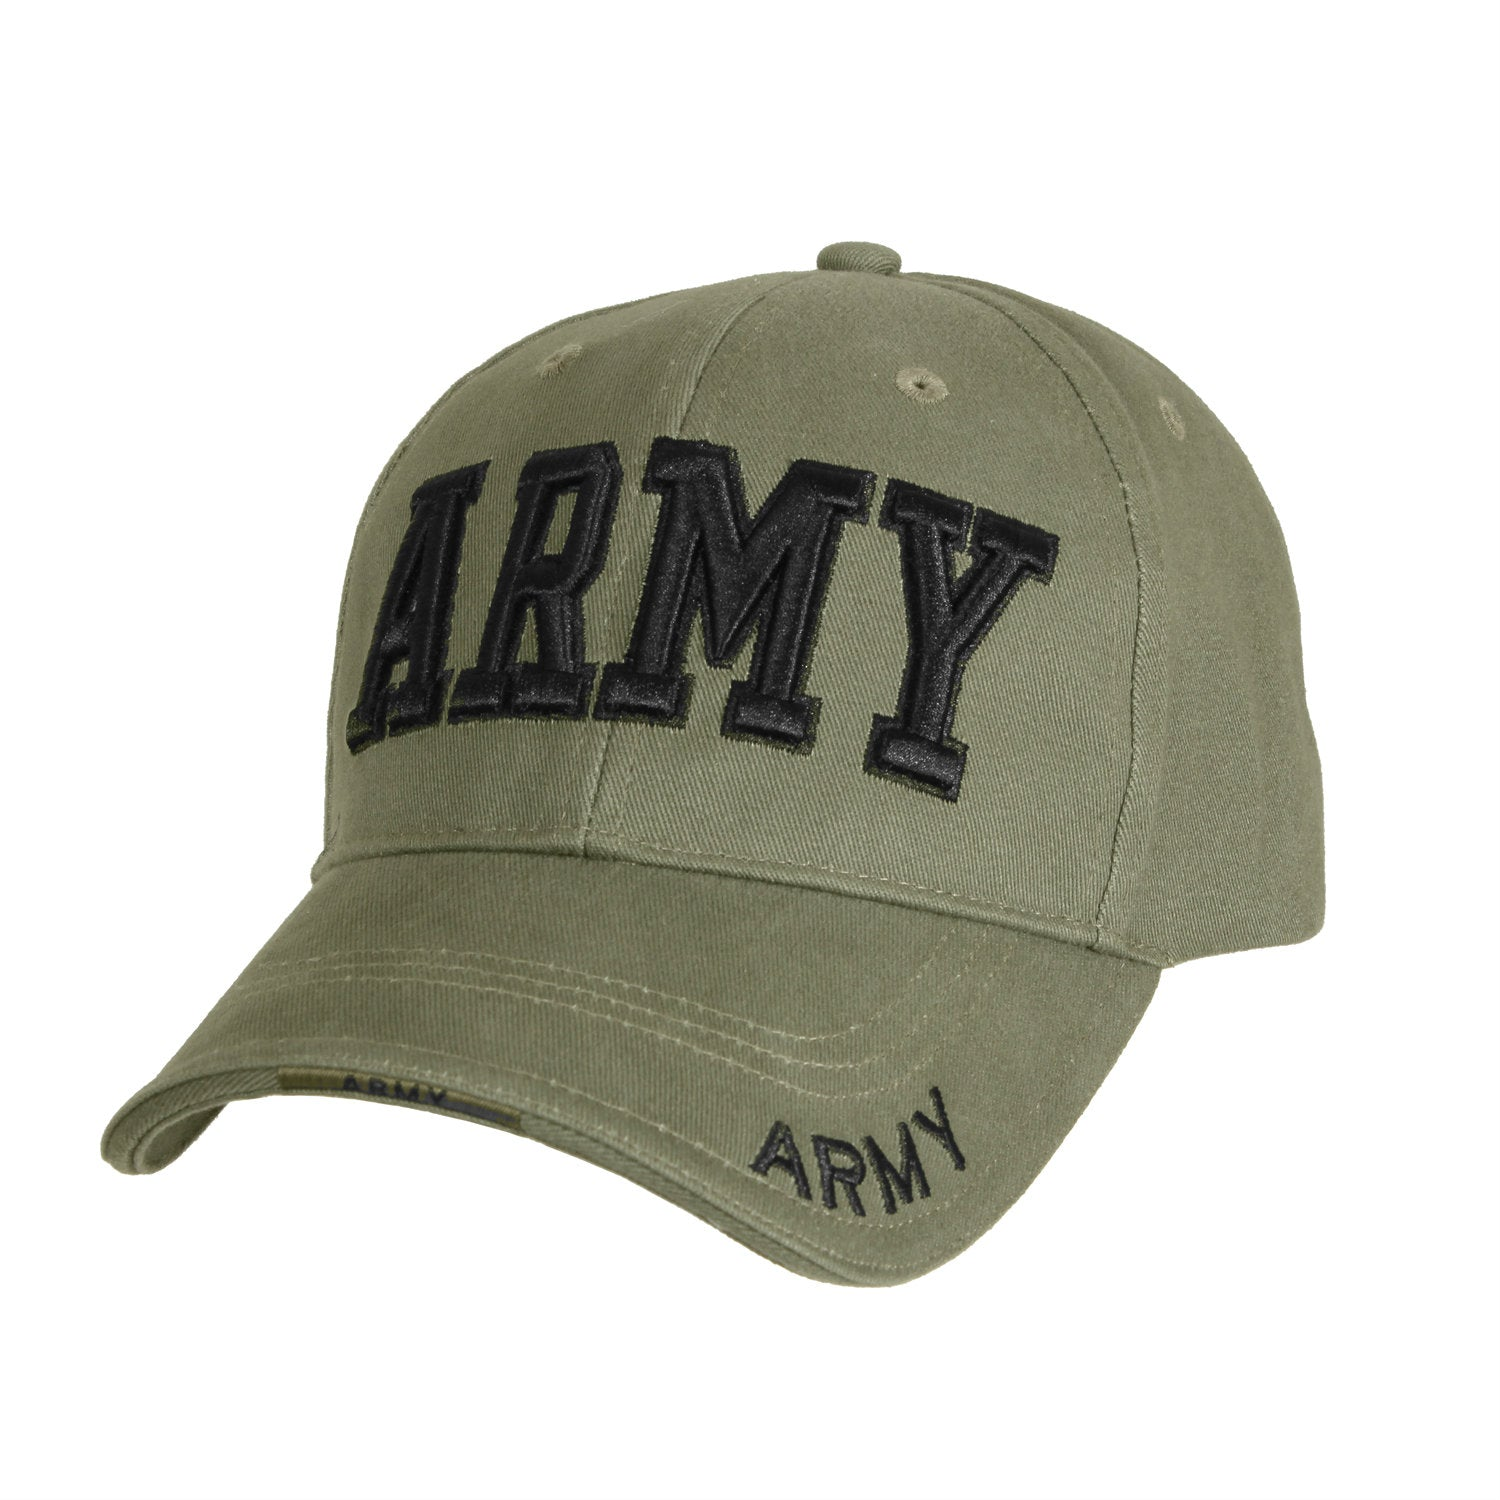 Army Text Embroidered Hat Olive